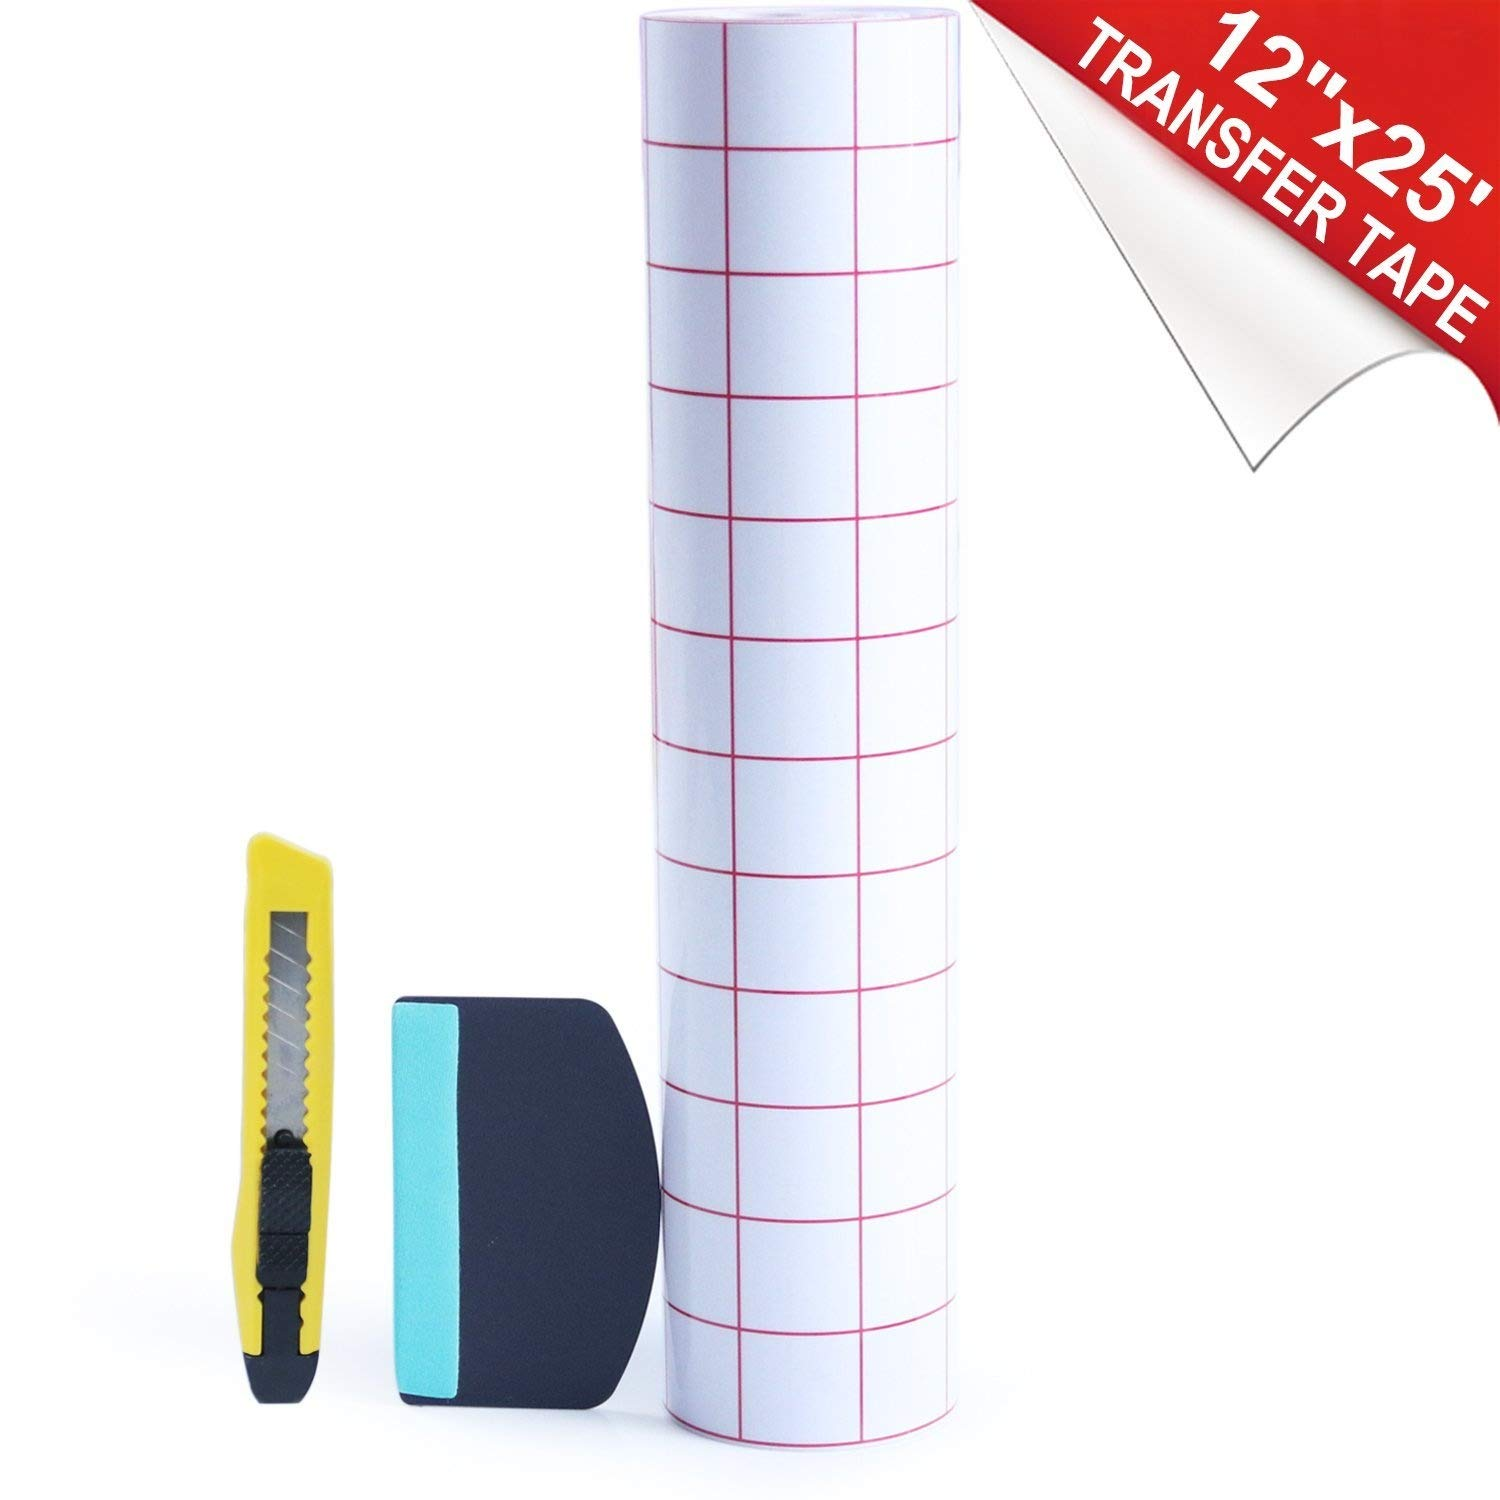 Clear Transfer Paper Tape Roll 12 Inch ×25 Feet BURVAGY 4336883229